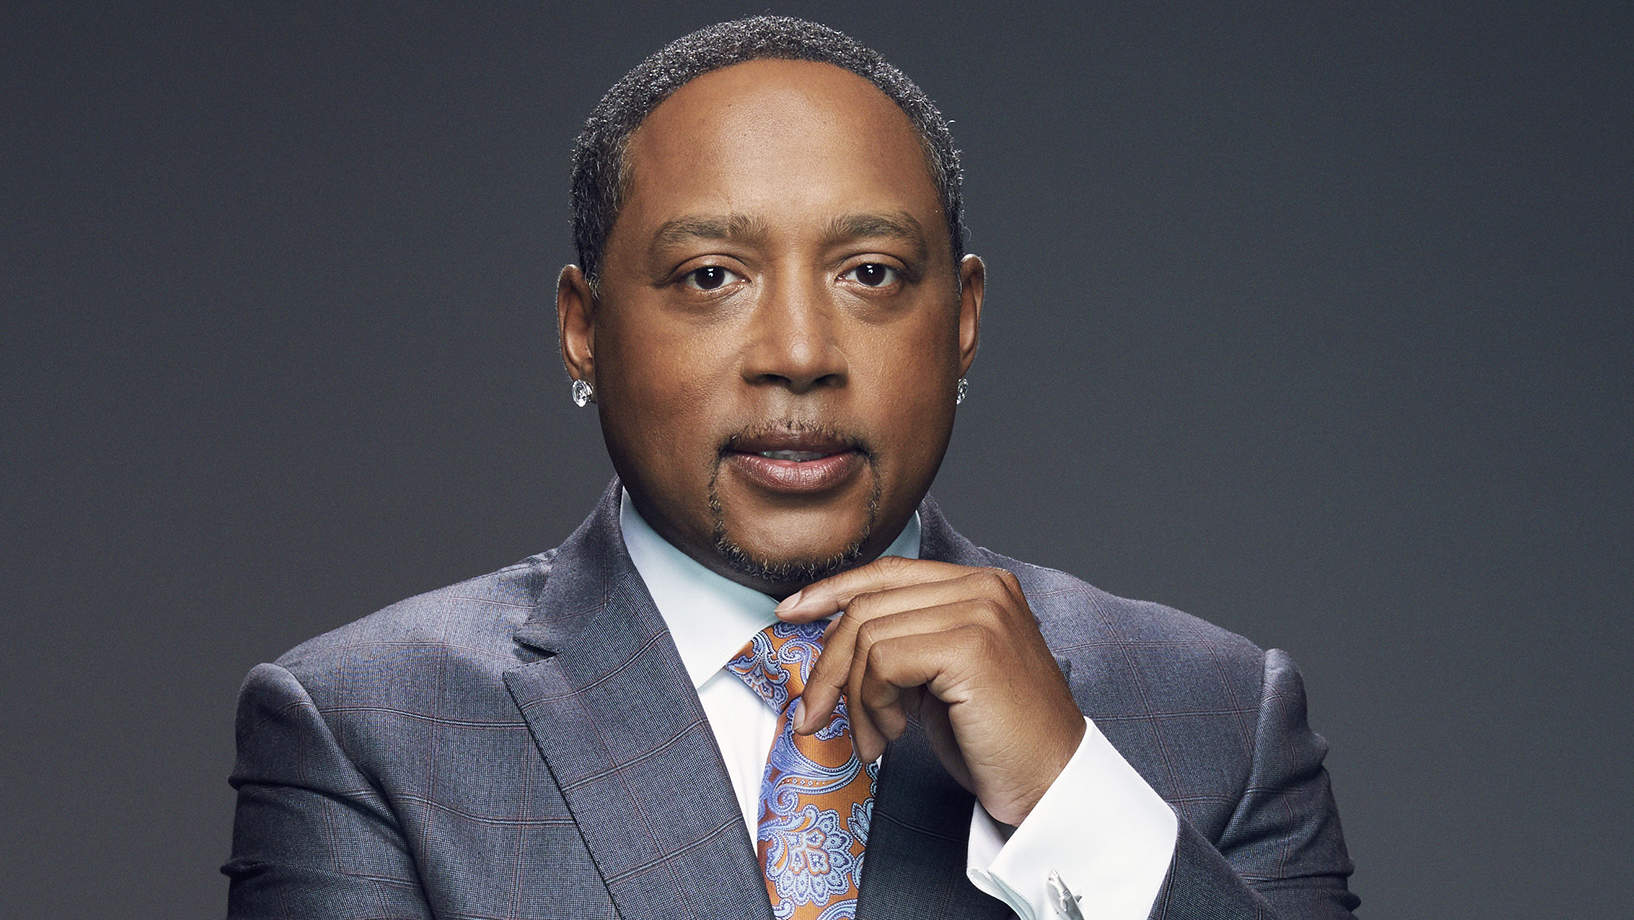 Shark Tank's Daymond John on Beating Thyroid Cancer: 'I Want to Walk My Daughters Down the Aisle'